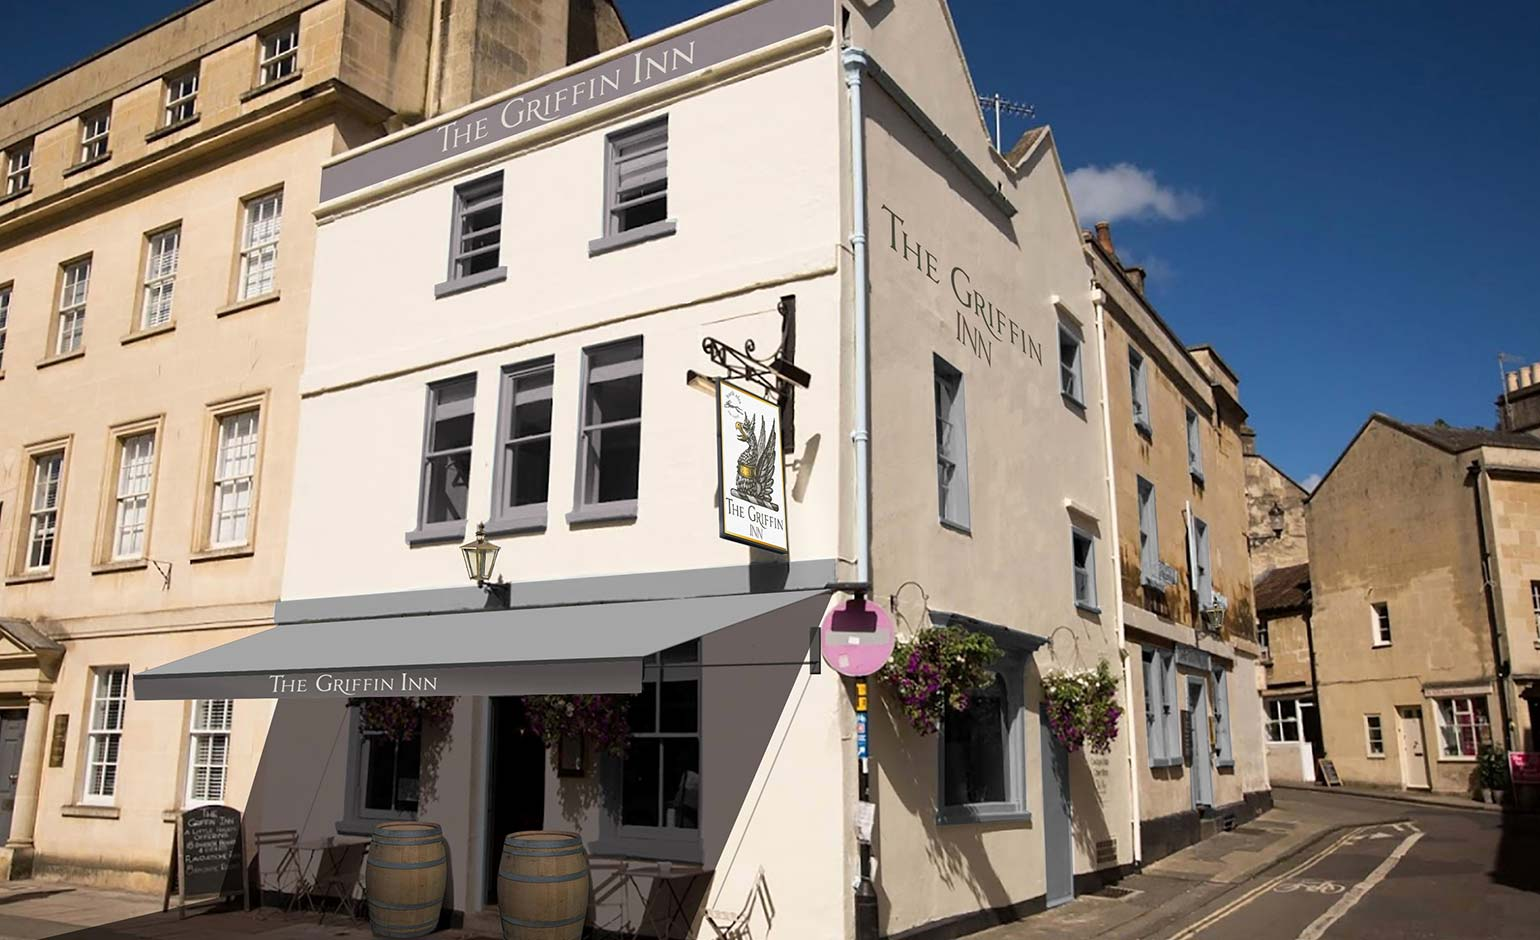 Cornwall's St Austell Brewery buys the Griffin Inn on Monmouth Street